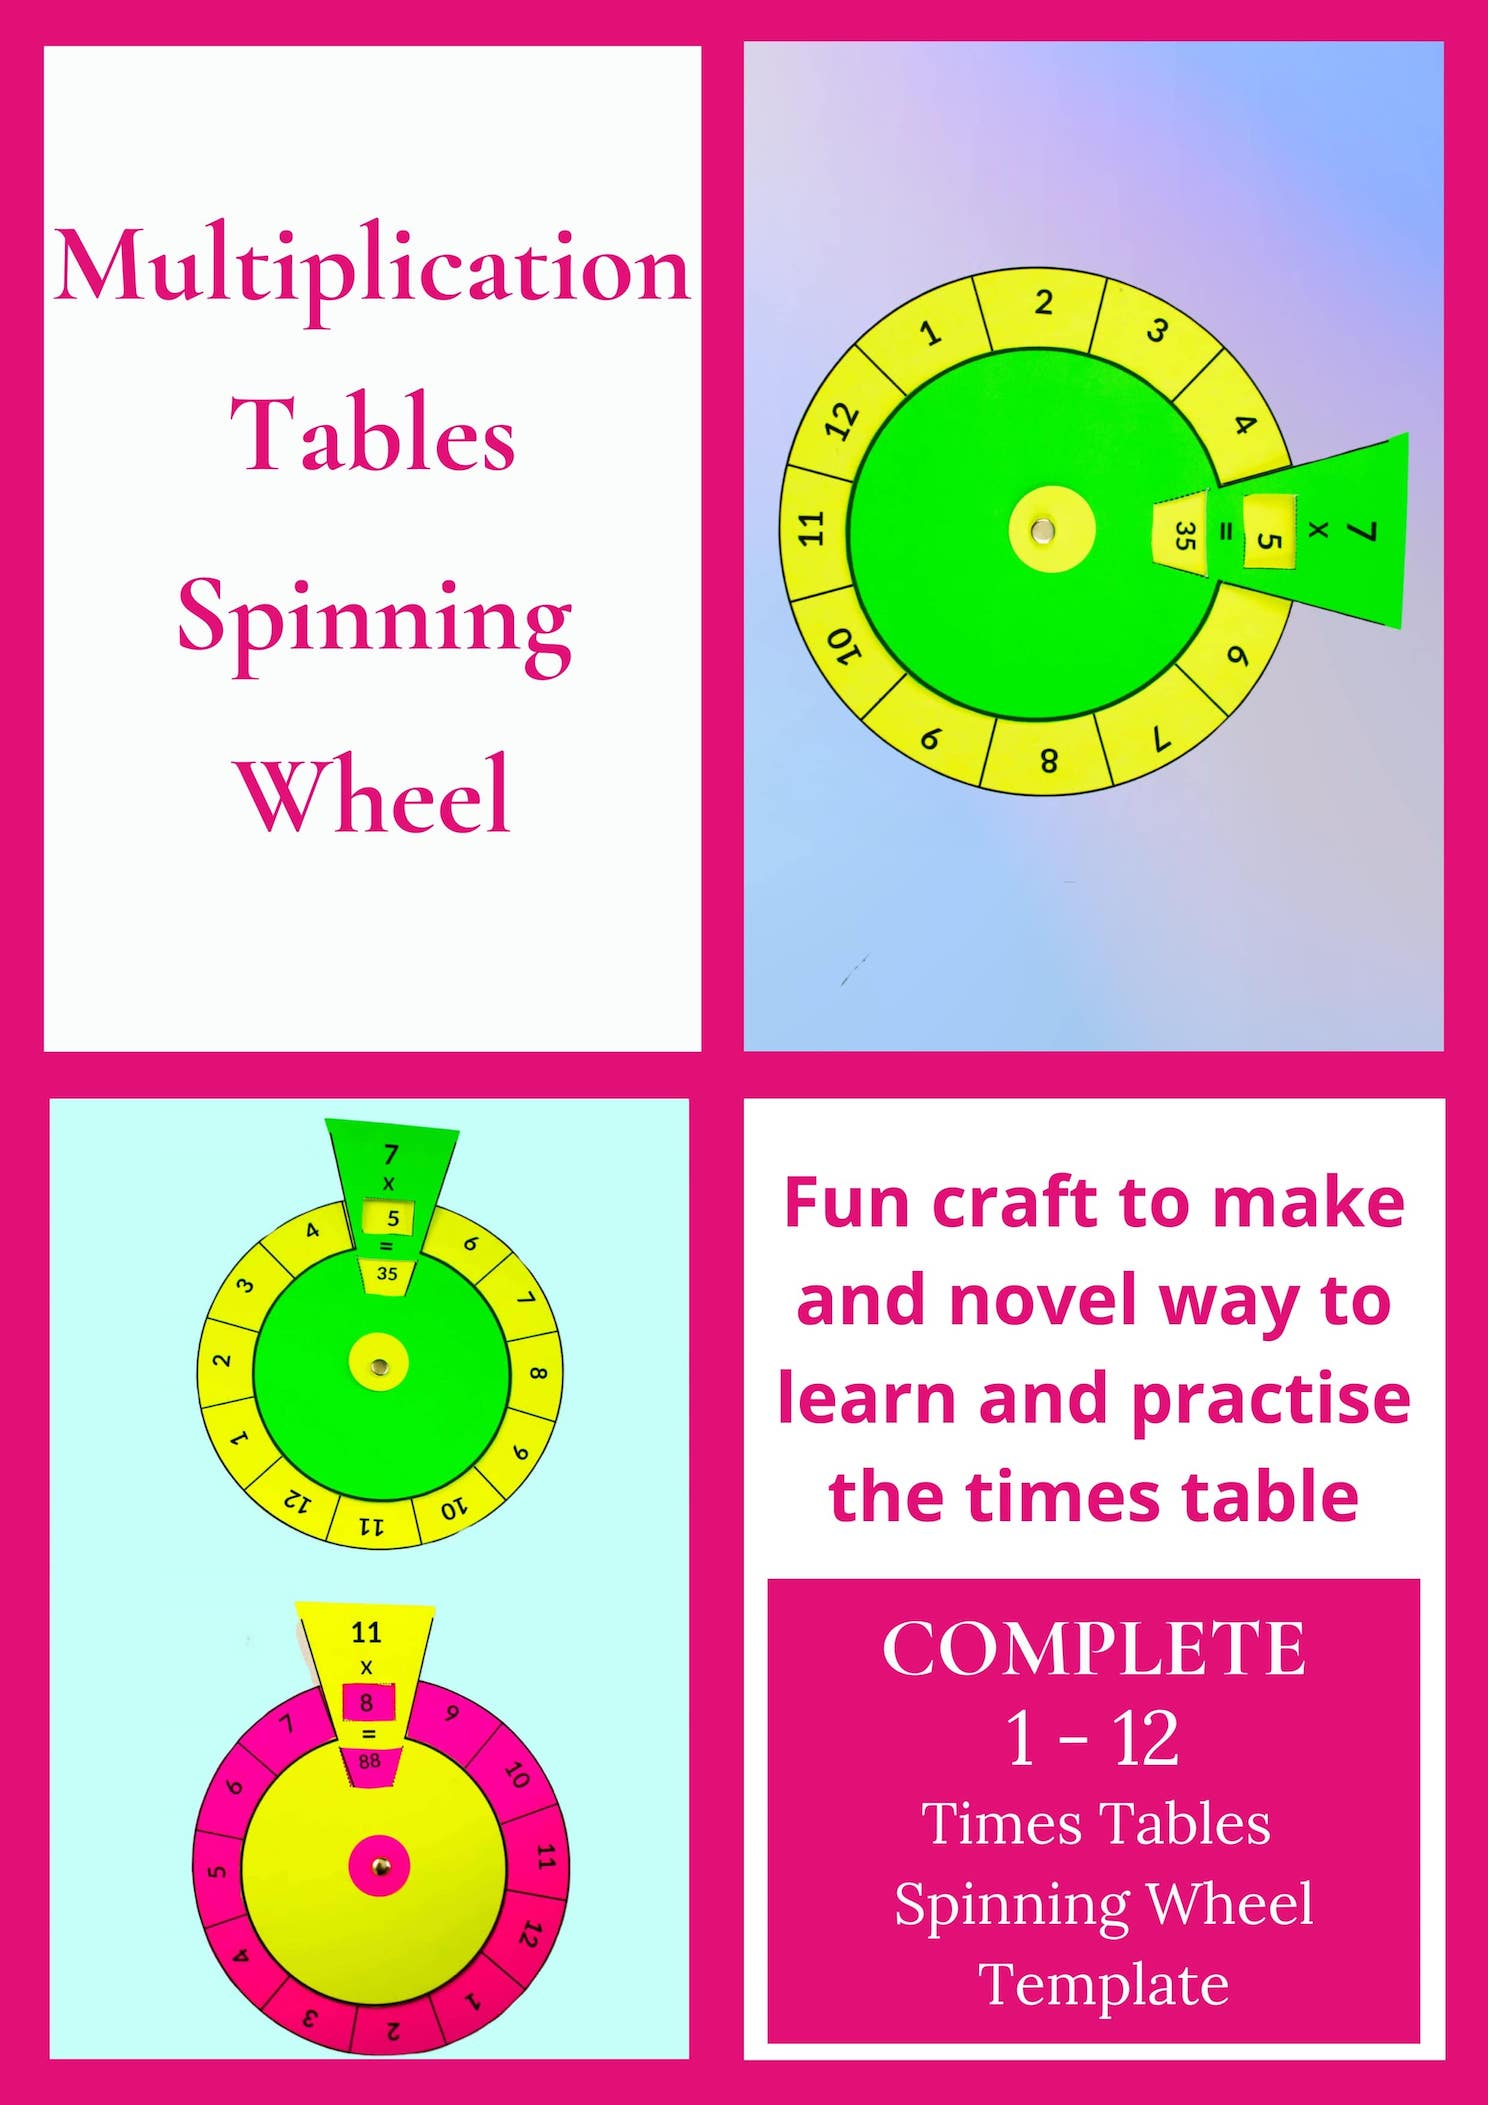 multiplication tables spinning wheel